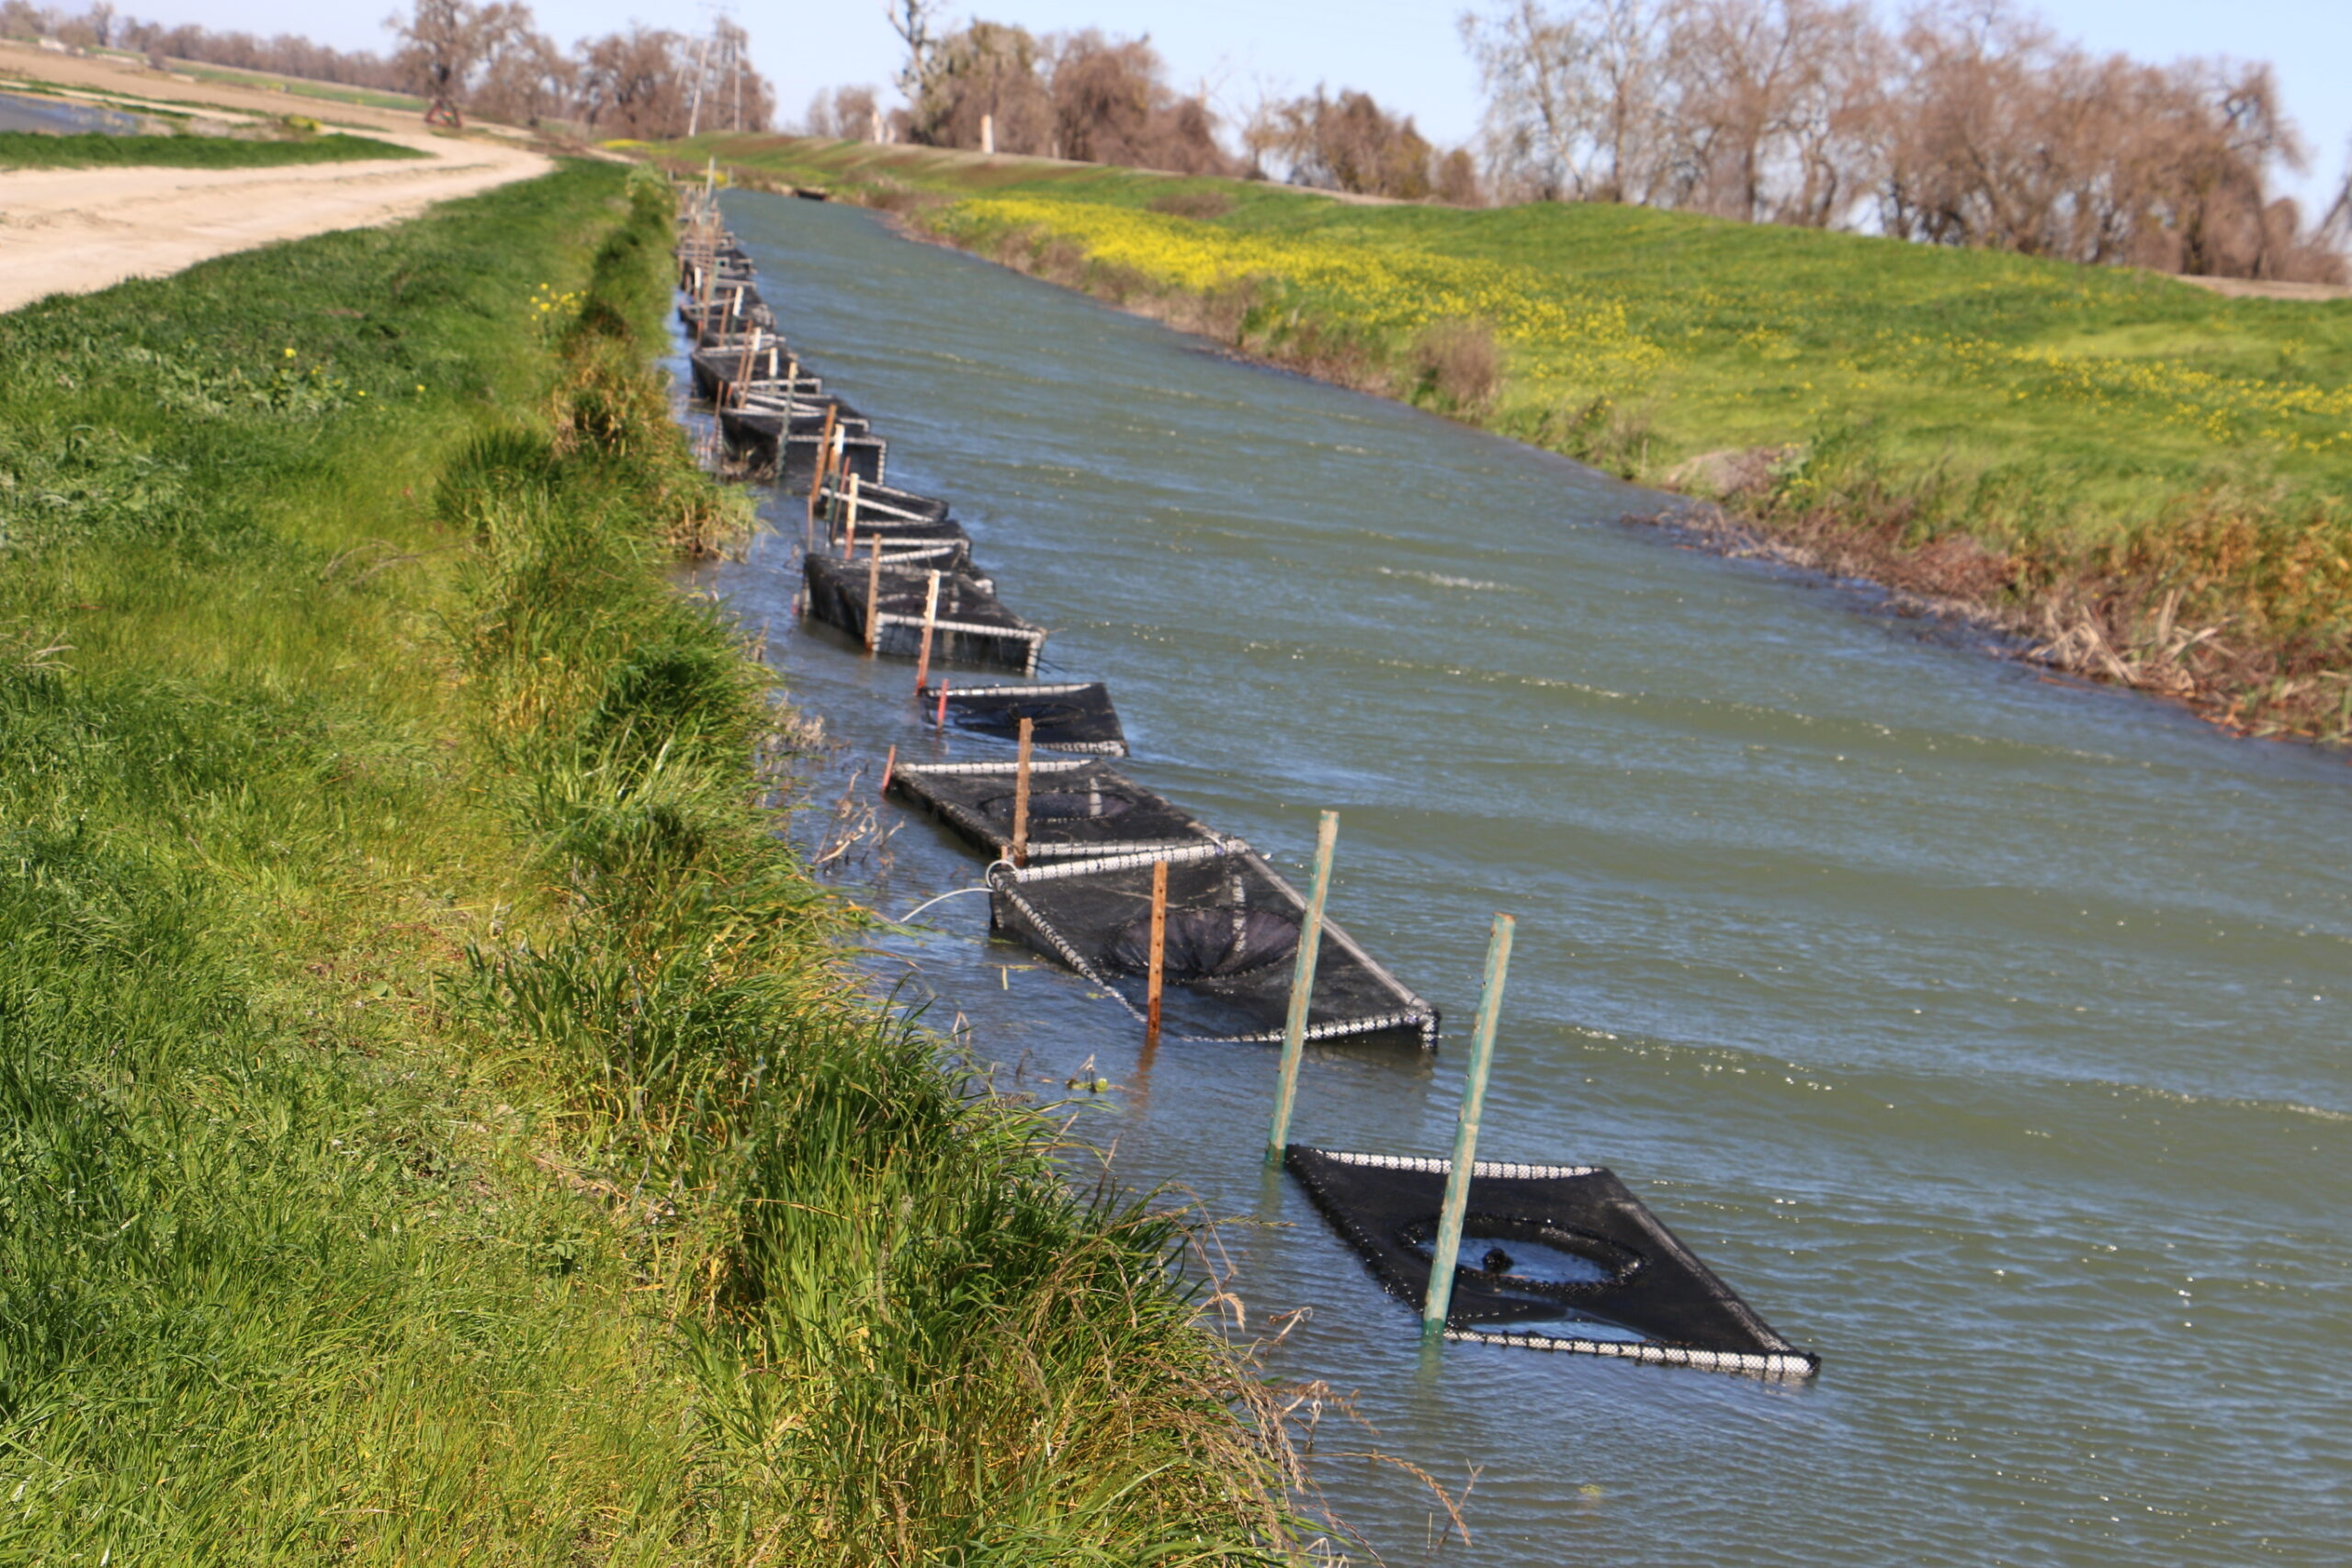 The caged salmon that were moved to a canal awaiting JSAT tagging after their growth in rice fields at River Garden Farms.